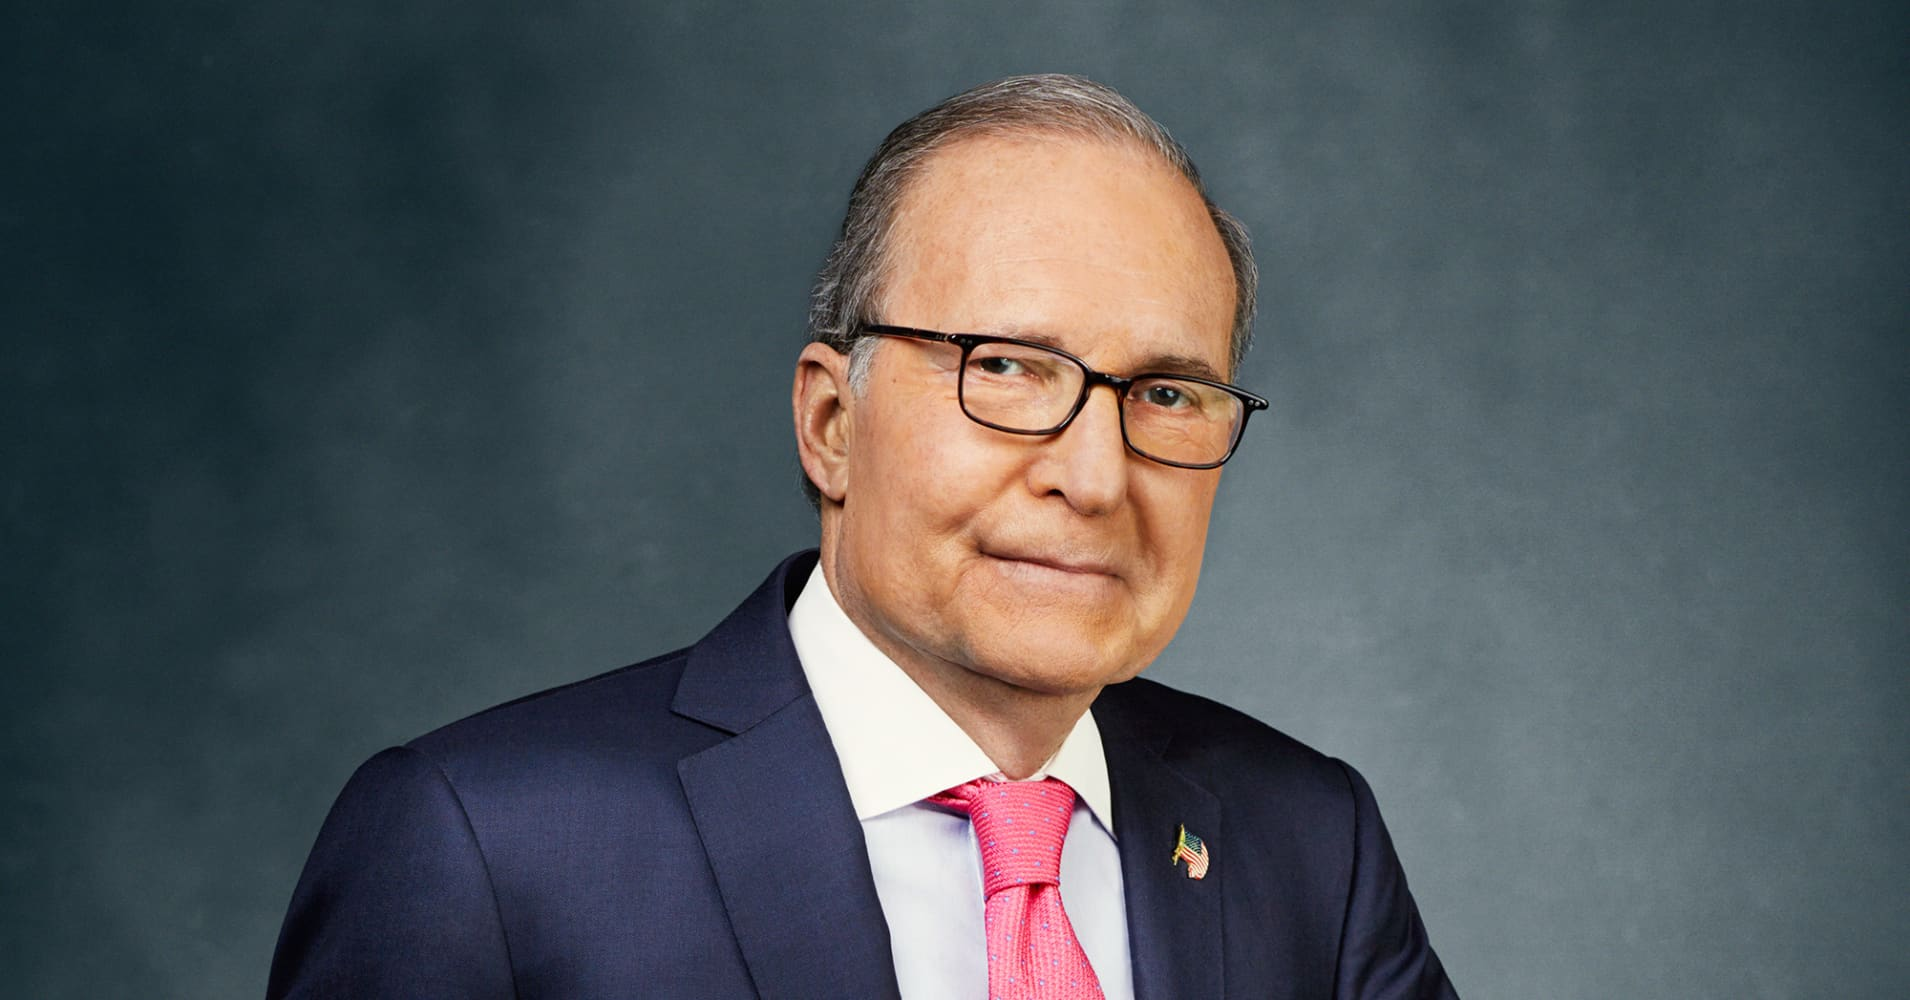 Larry Kudlow Profile - CNBC